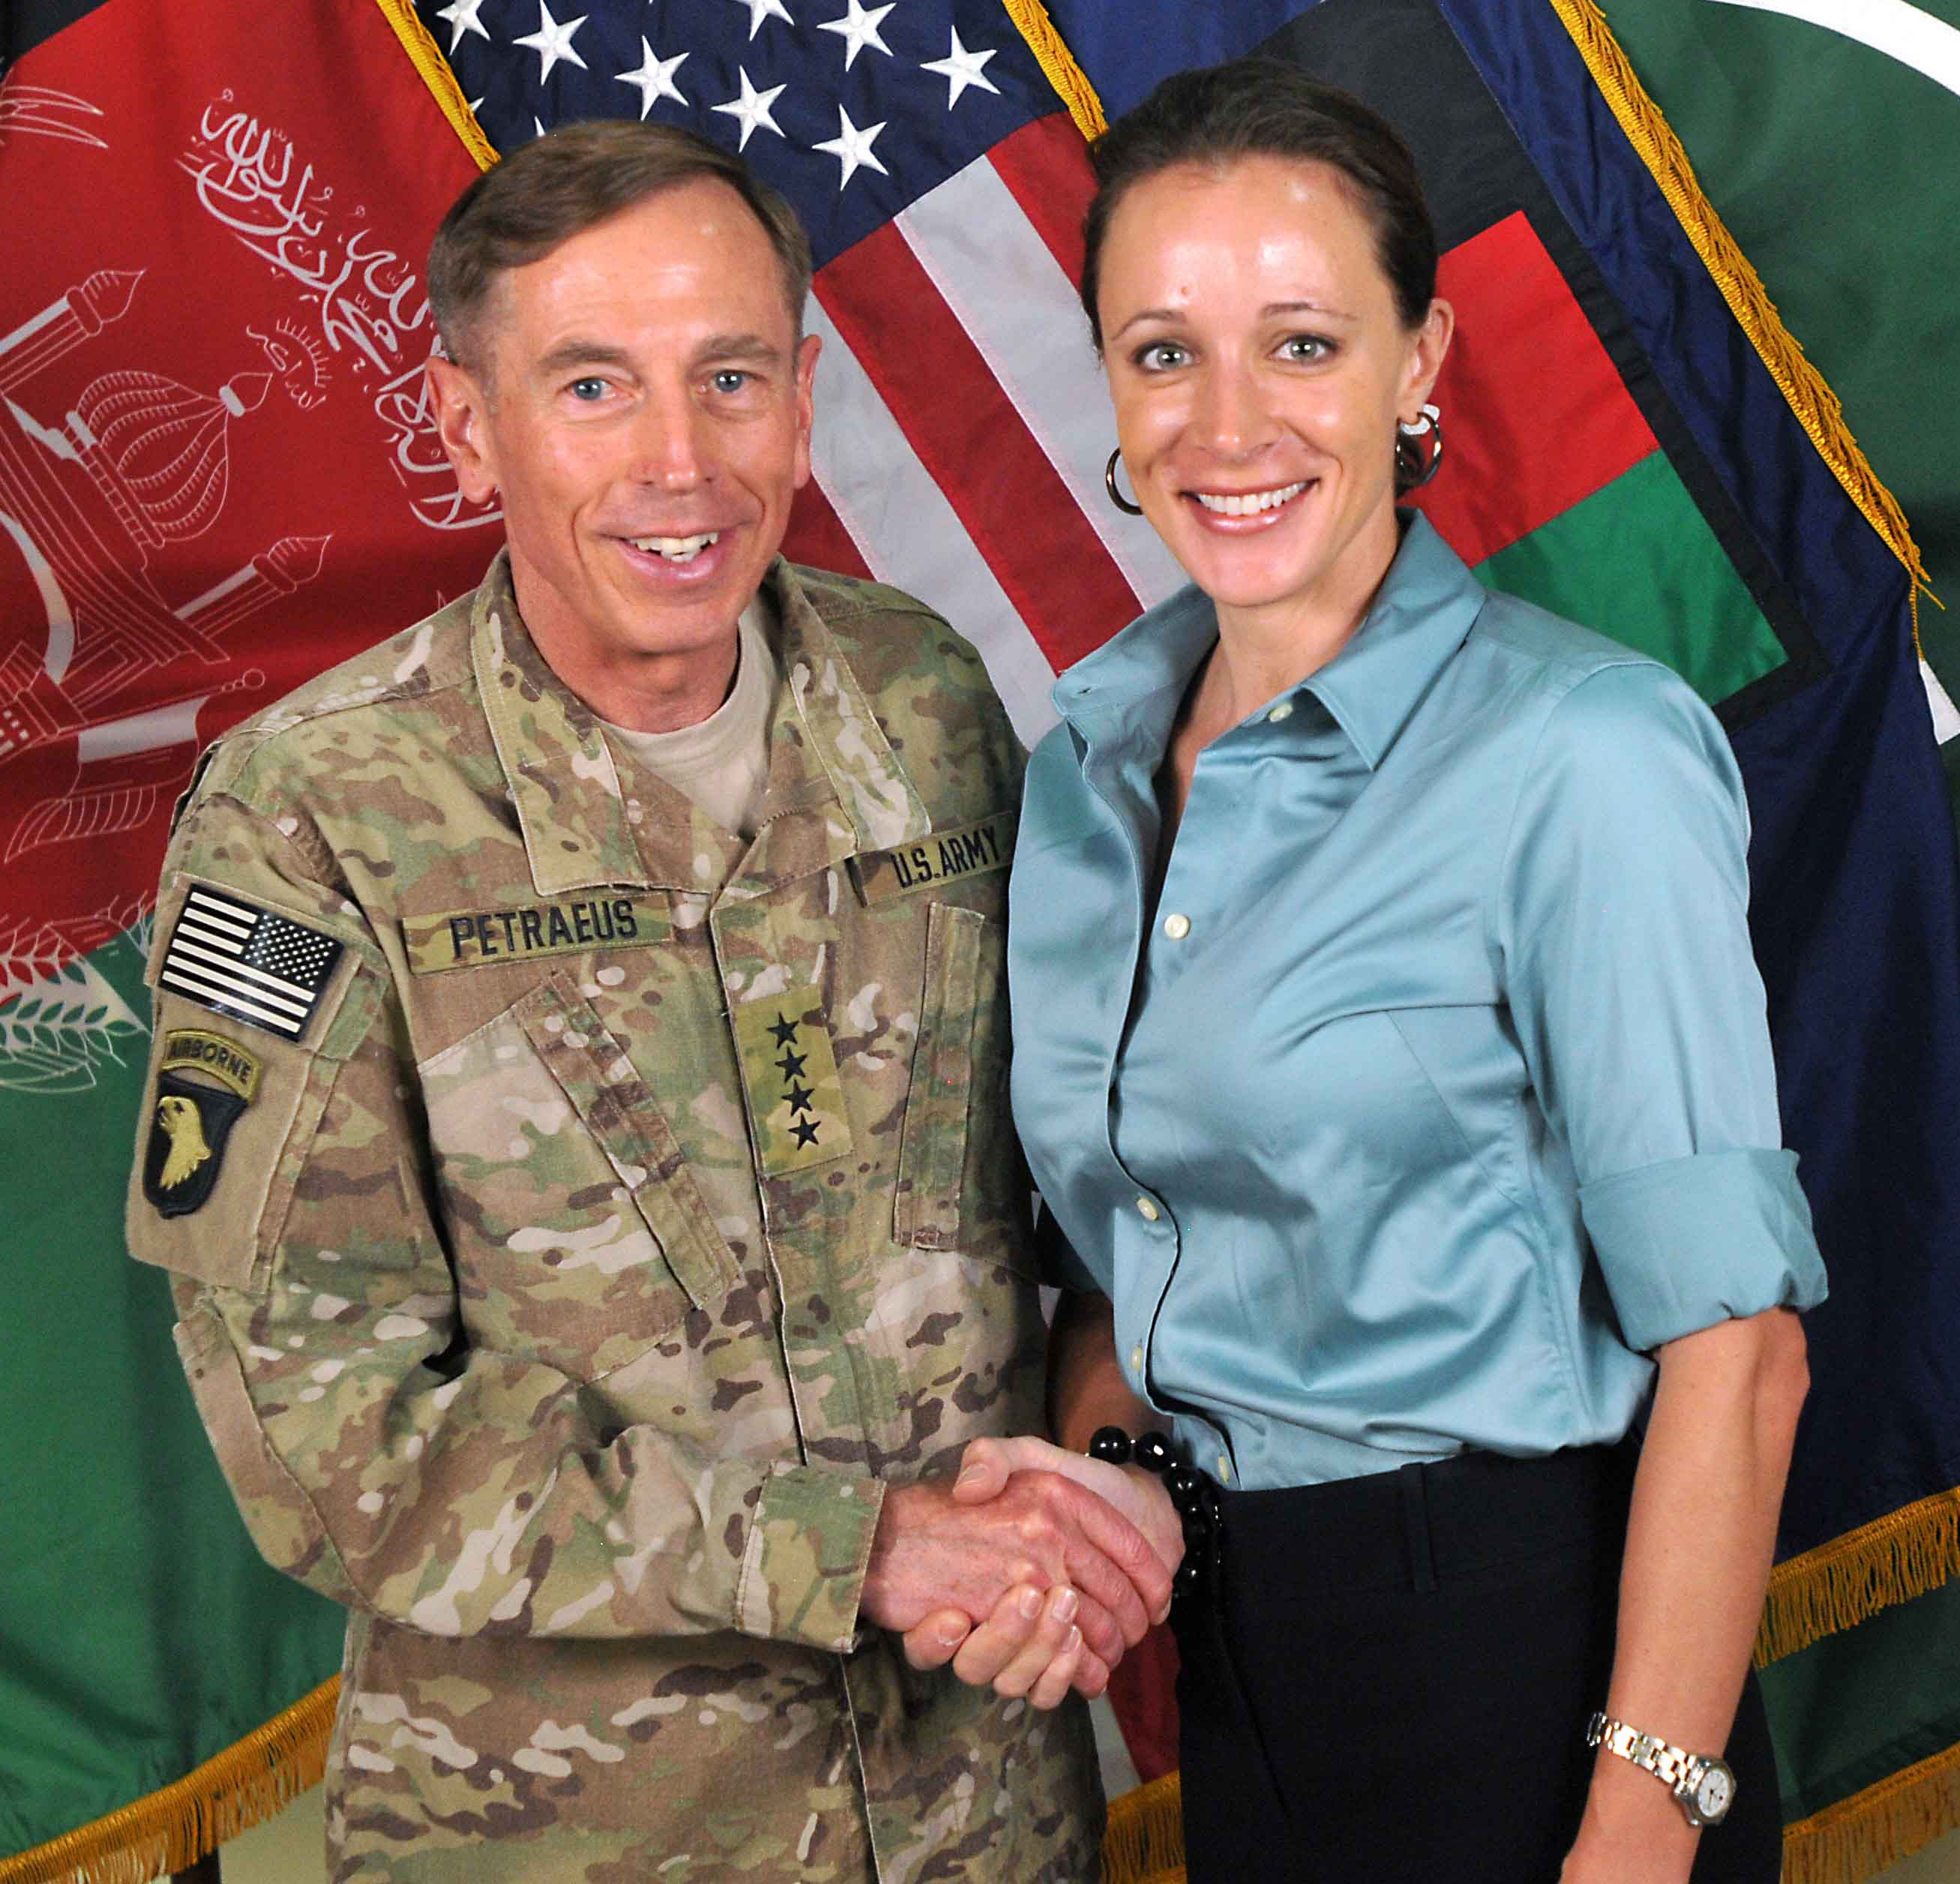 http://upload.wikimedia.org/wikipedia/commons/d/d5/David_Petraeus_and_Paula_Broadwell.jpg